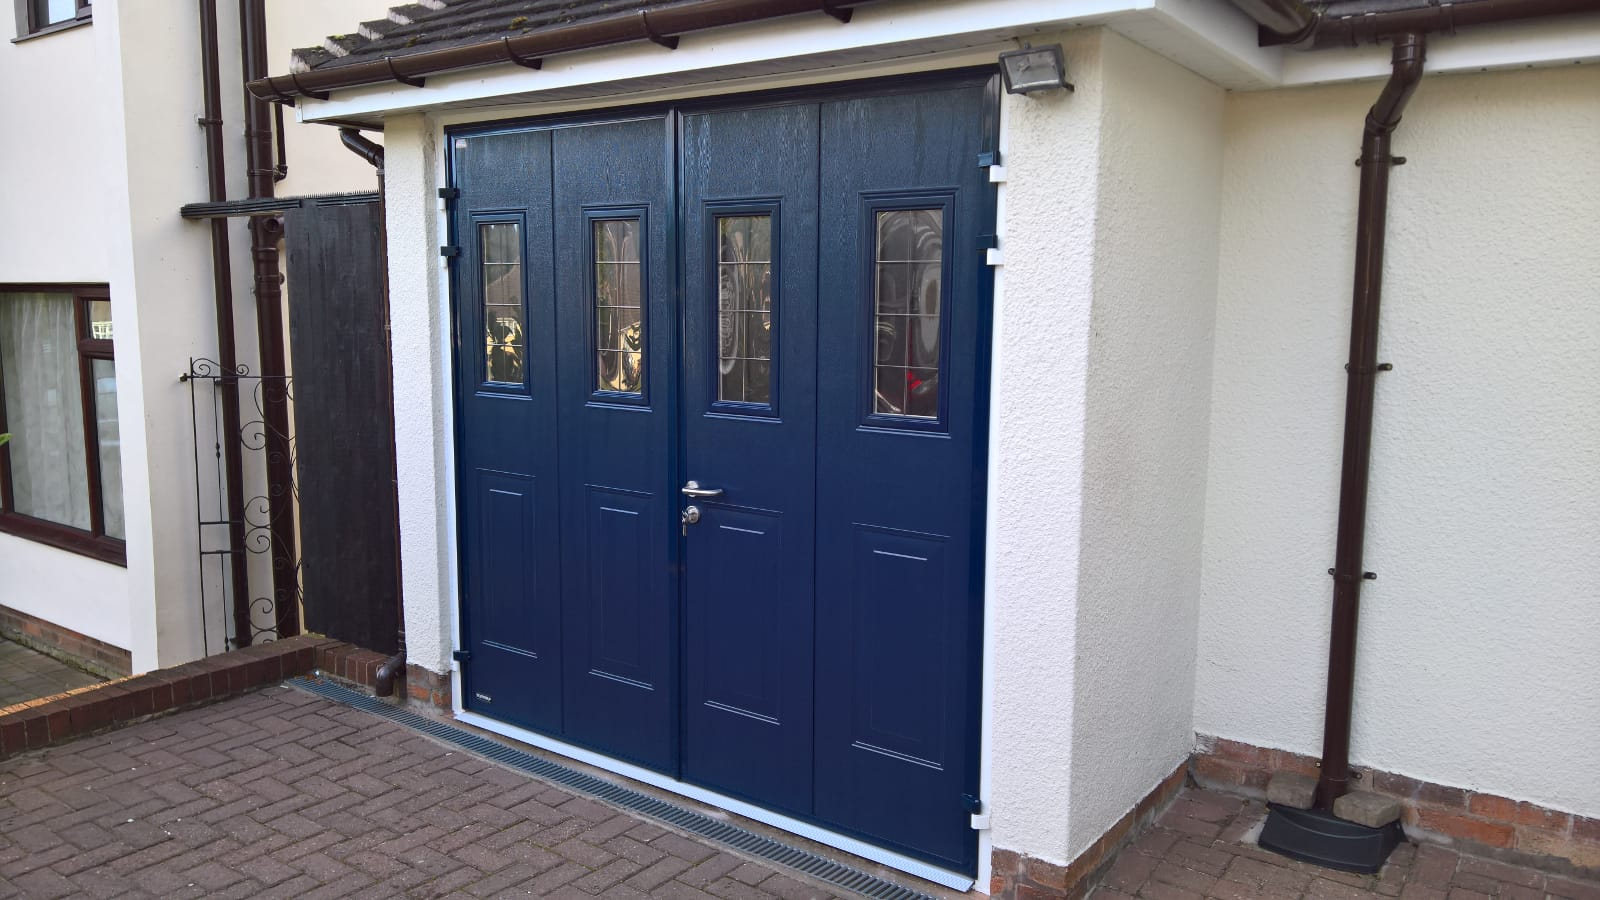 Insulated V Uninsulated Garage Door Which Is Right For You